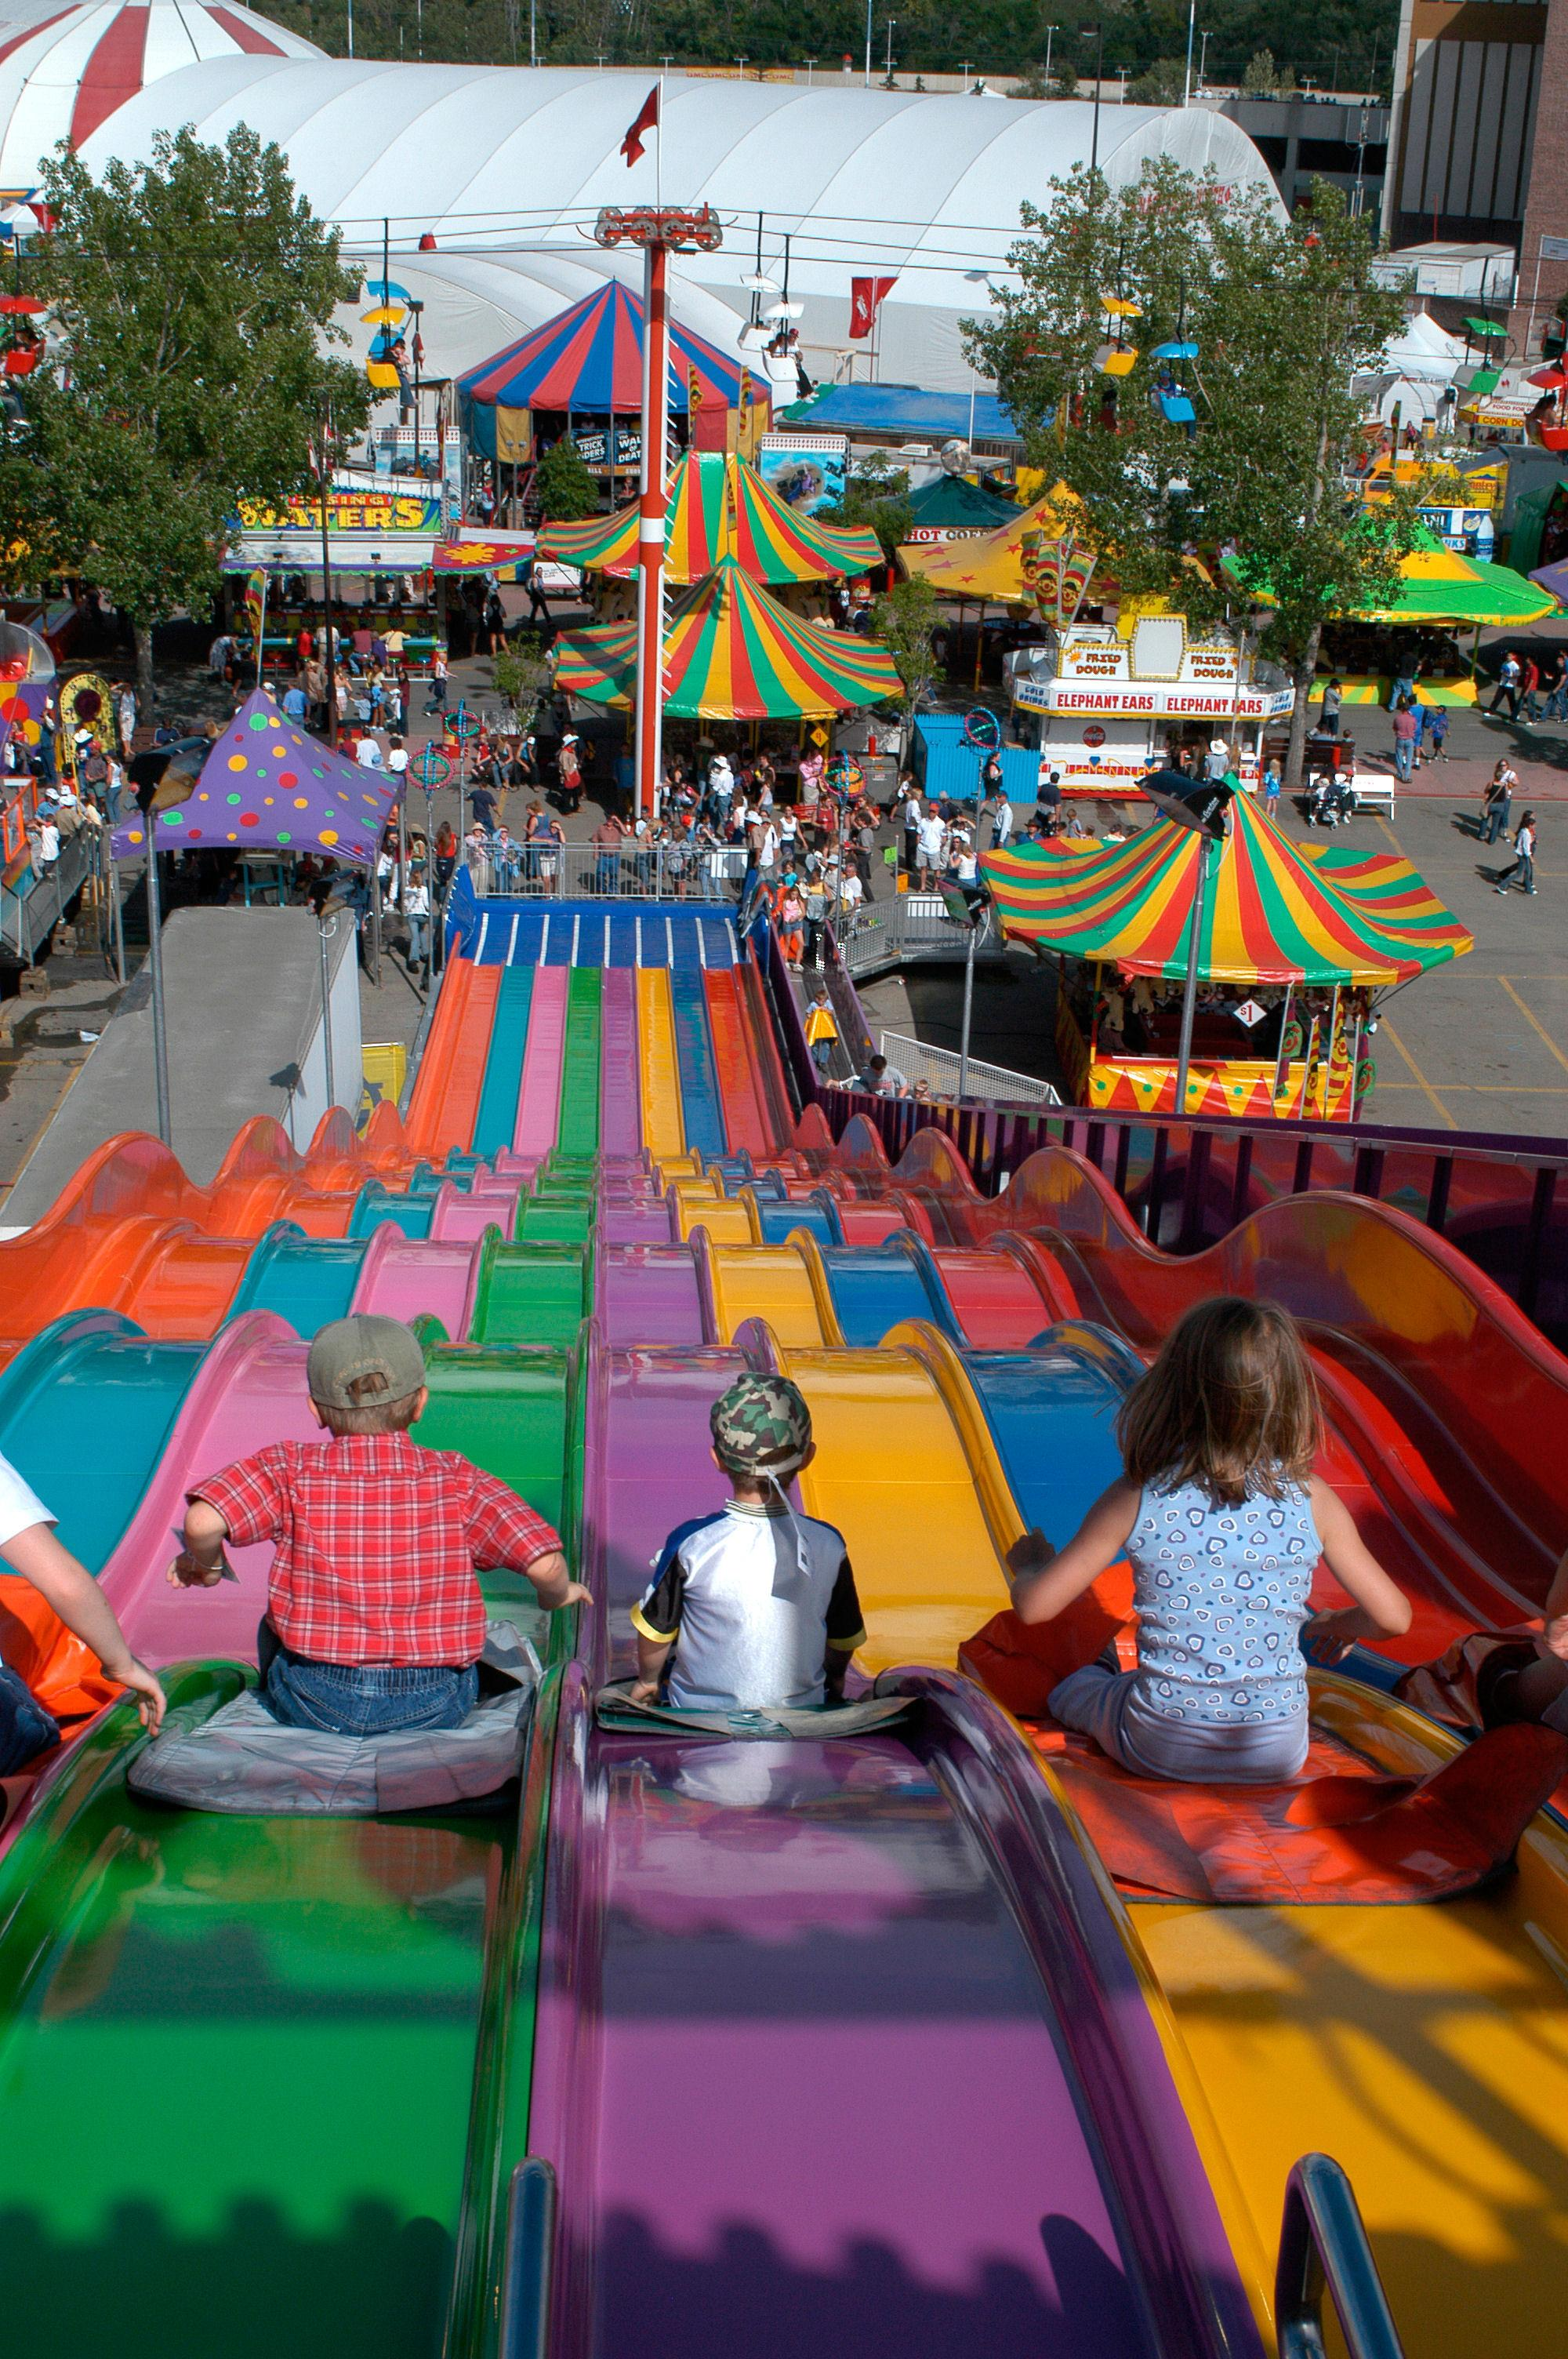 The new FUNtier slide (photo credit: Calgary Stampede)